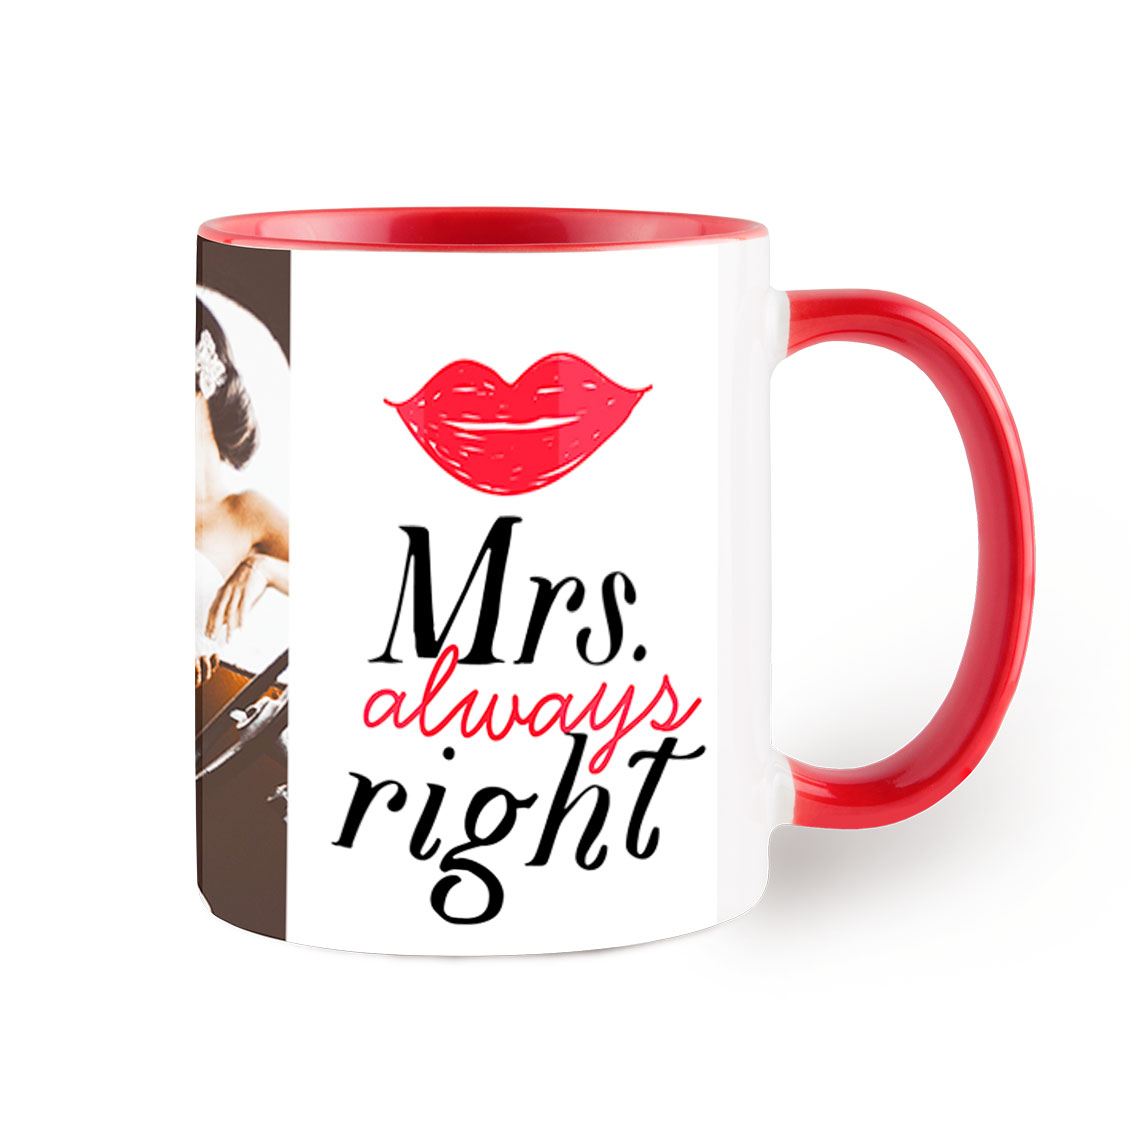 red coffee mug 11 oz red colorful mug mugs gifts. Black Bedroom Furniture Sets. Home Design Ideas